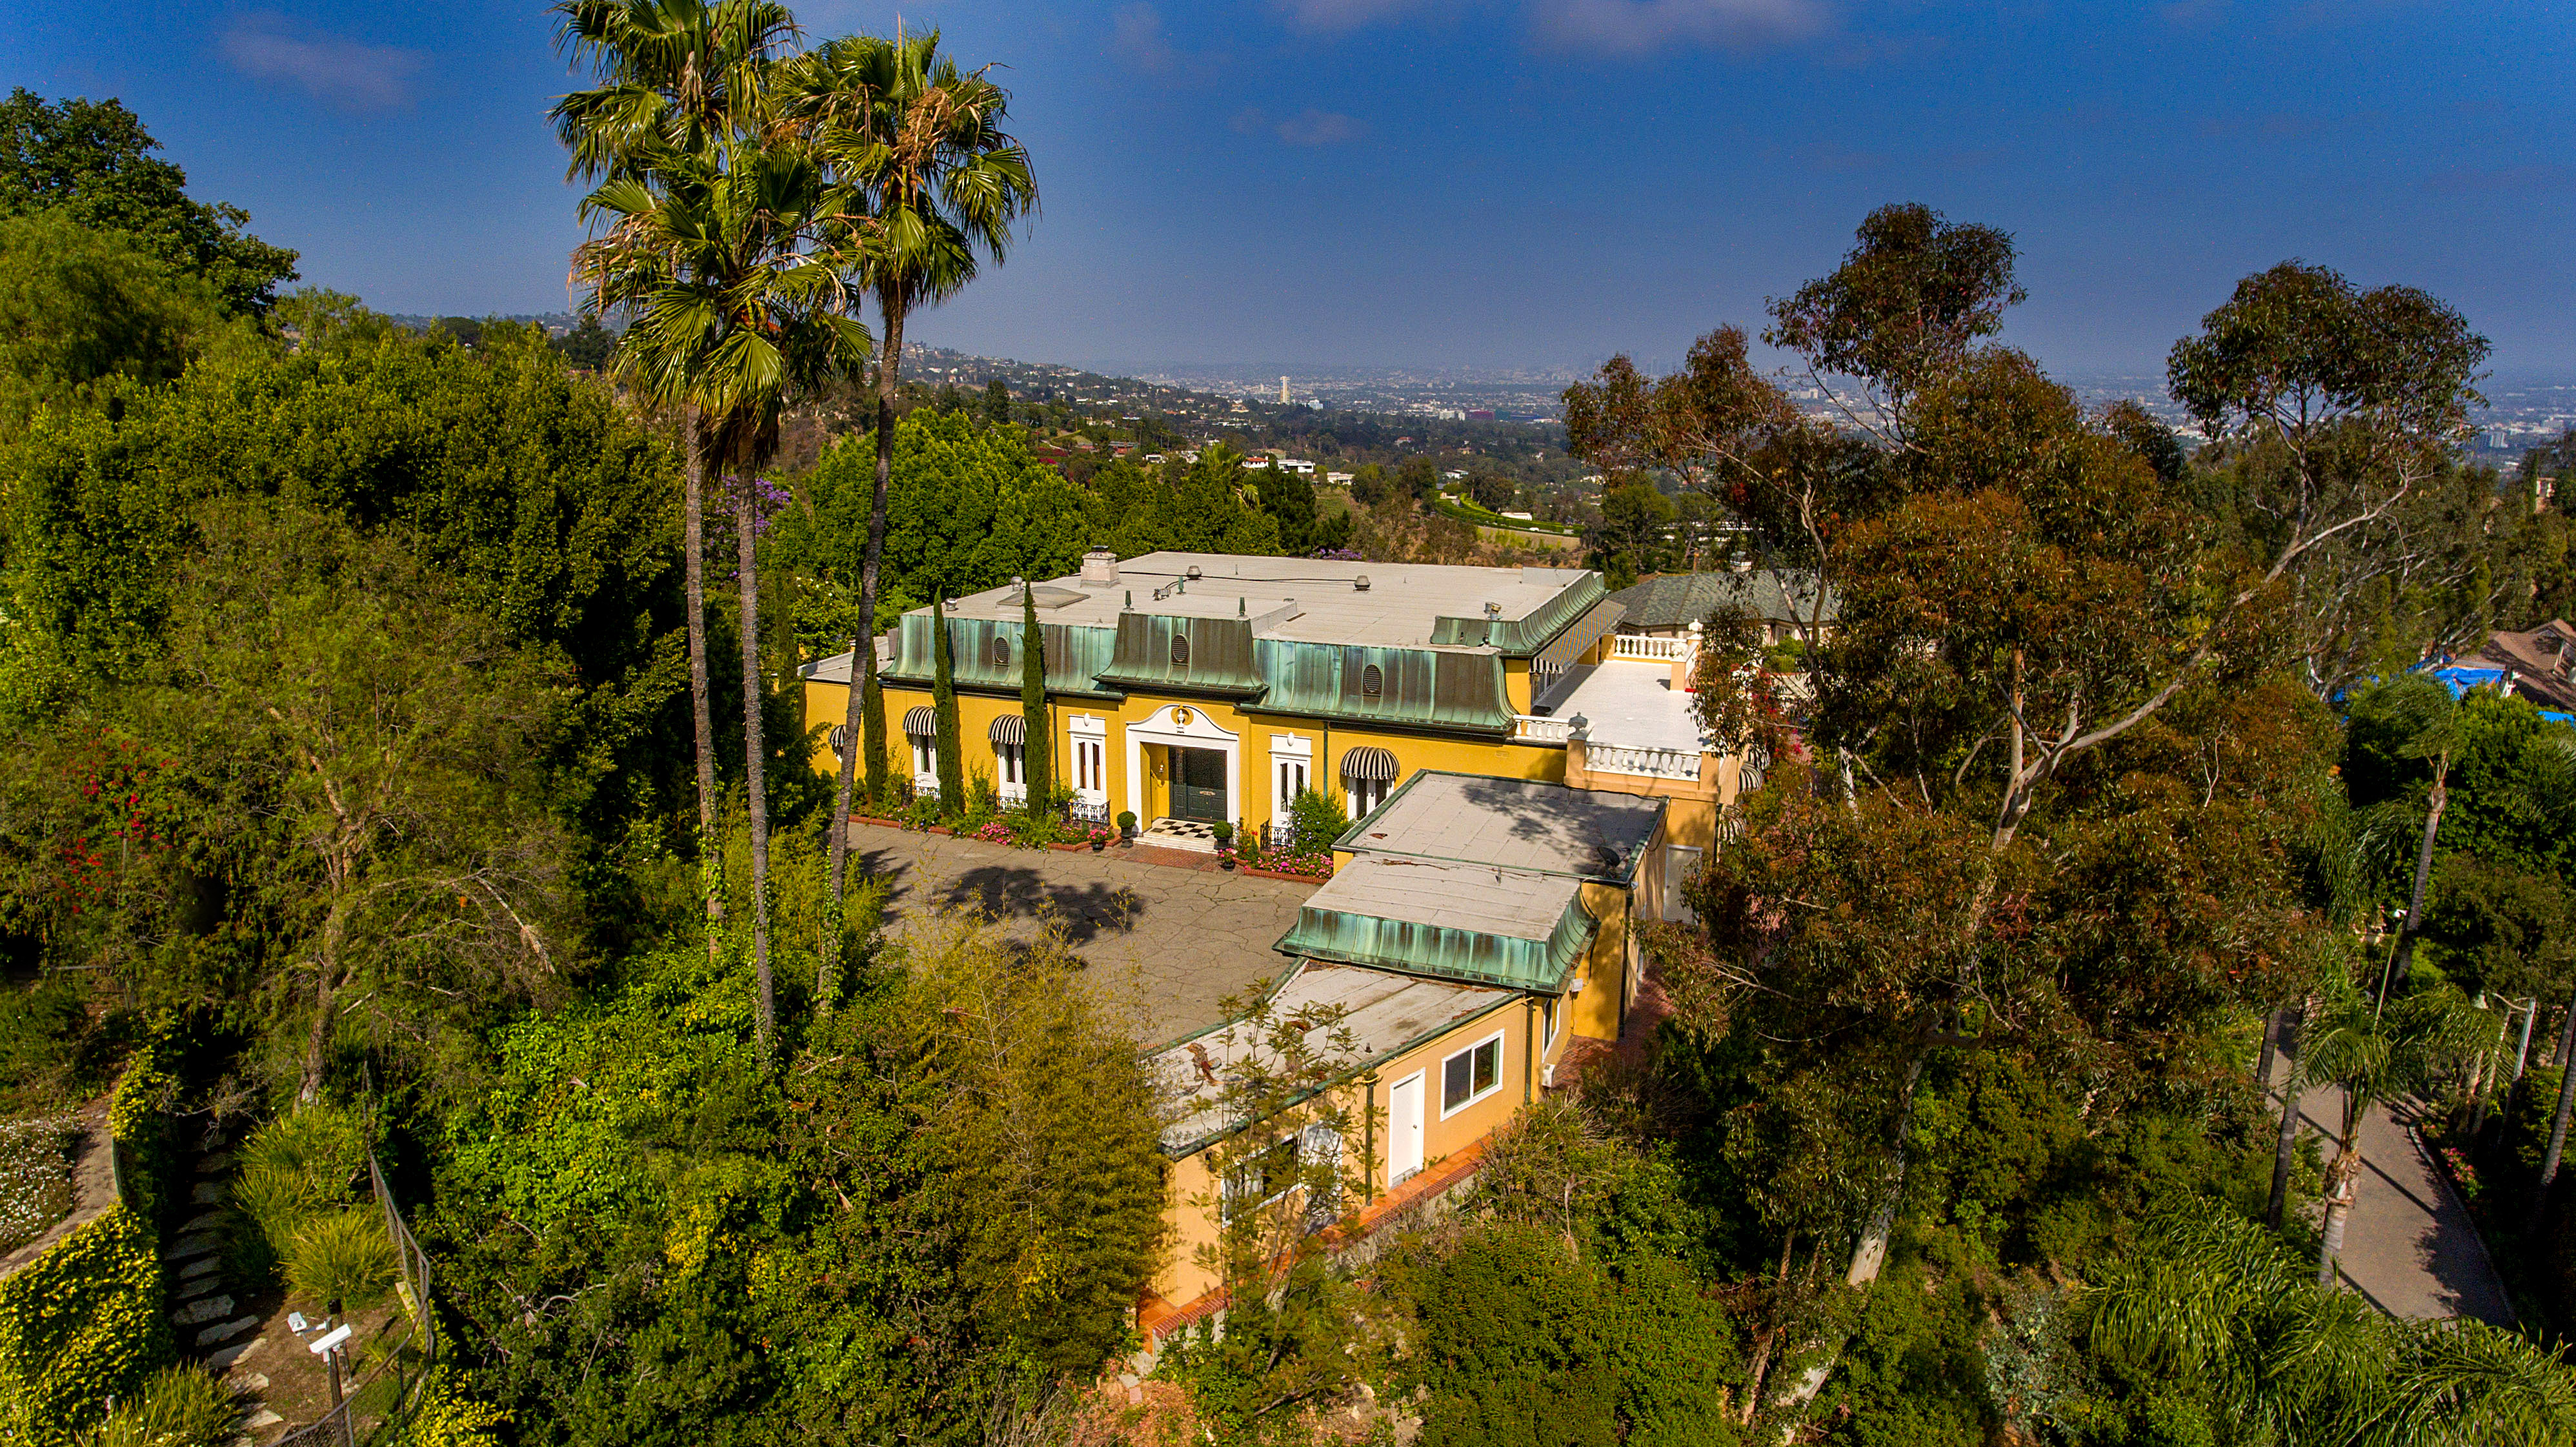 The Bel-Air home of legendary Hollywood star Zsa Zsa Gabor has sold for $20.3 Million.